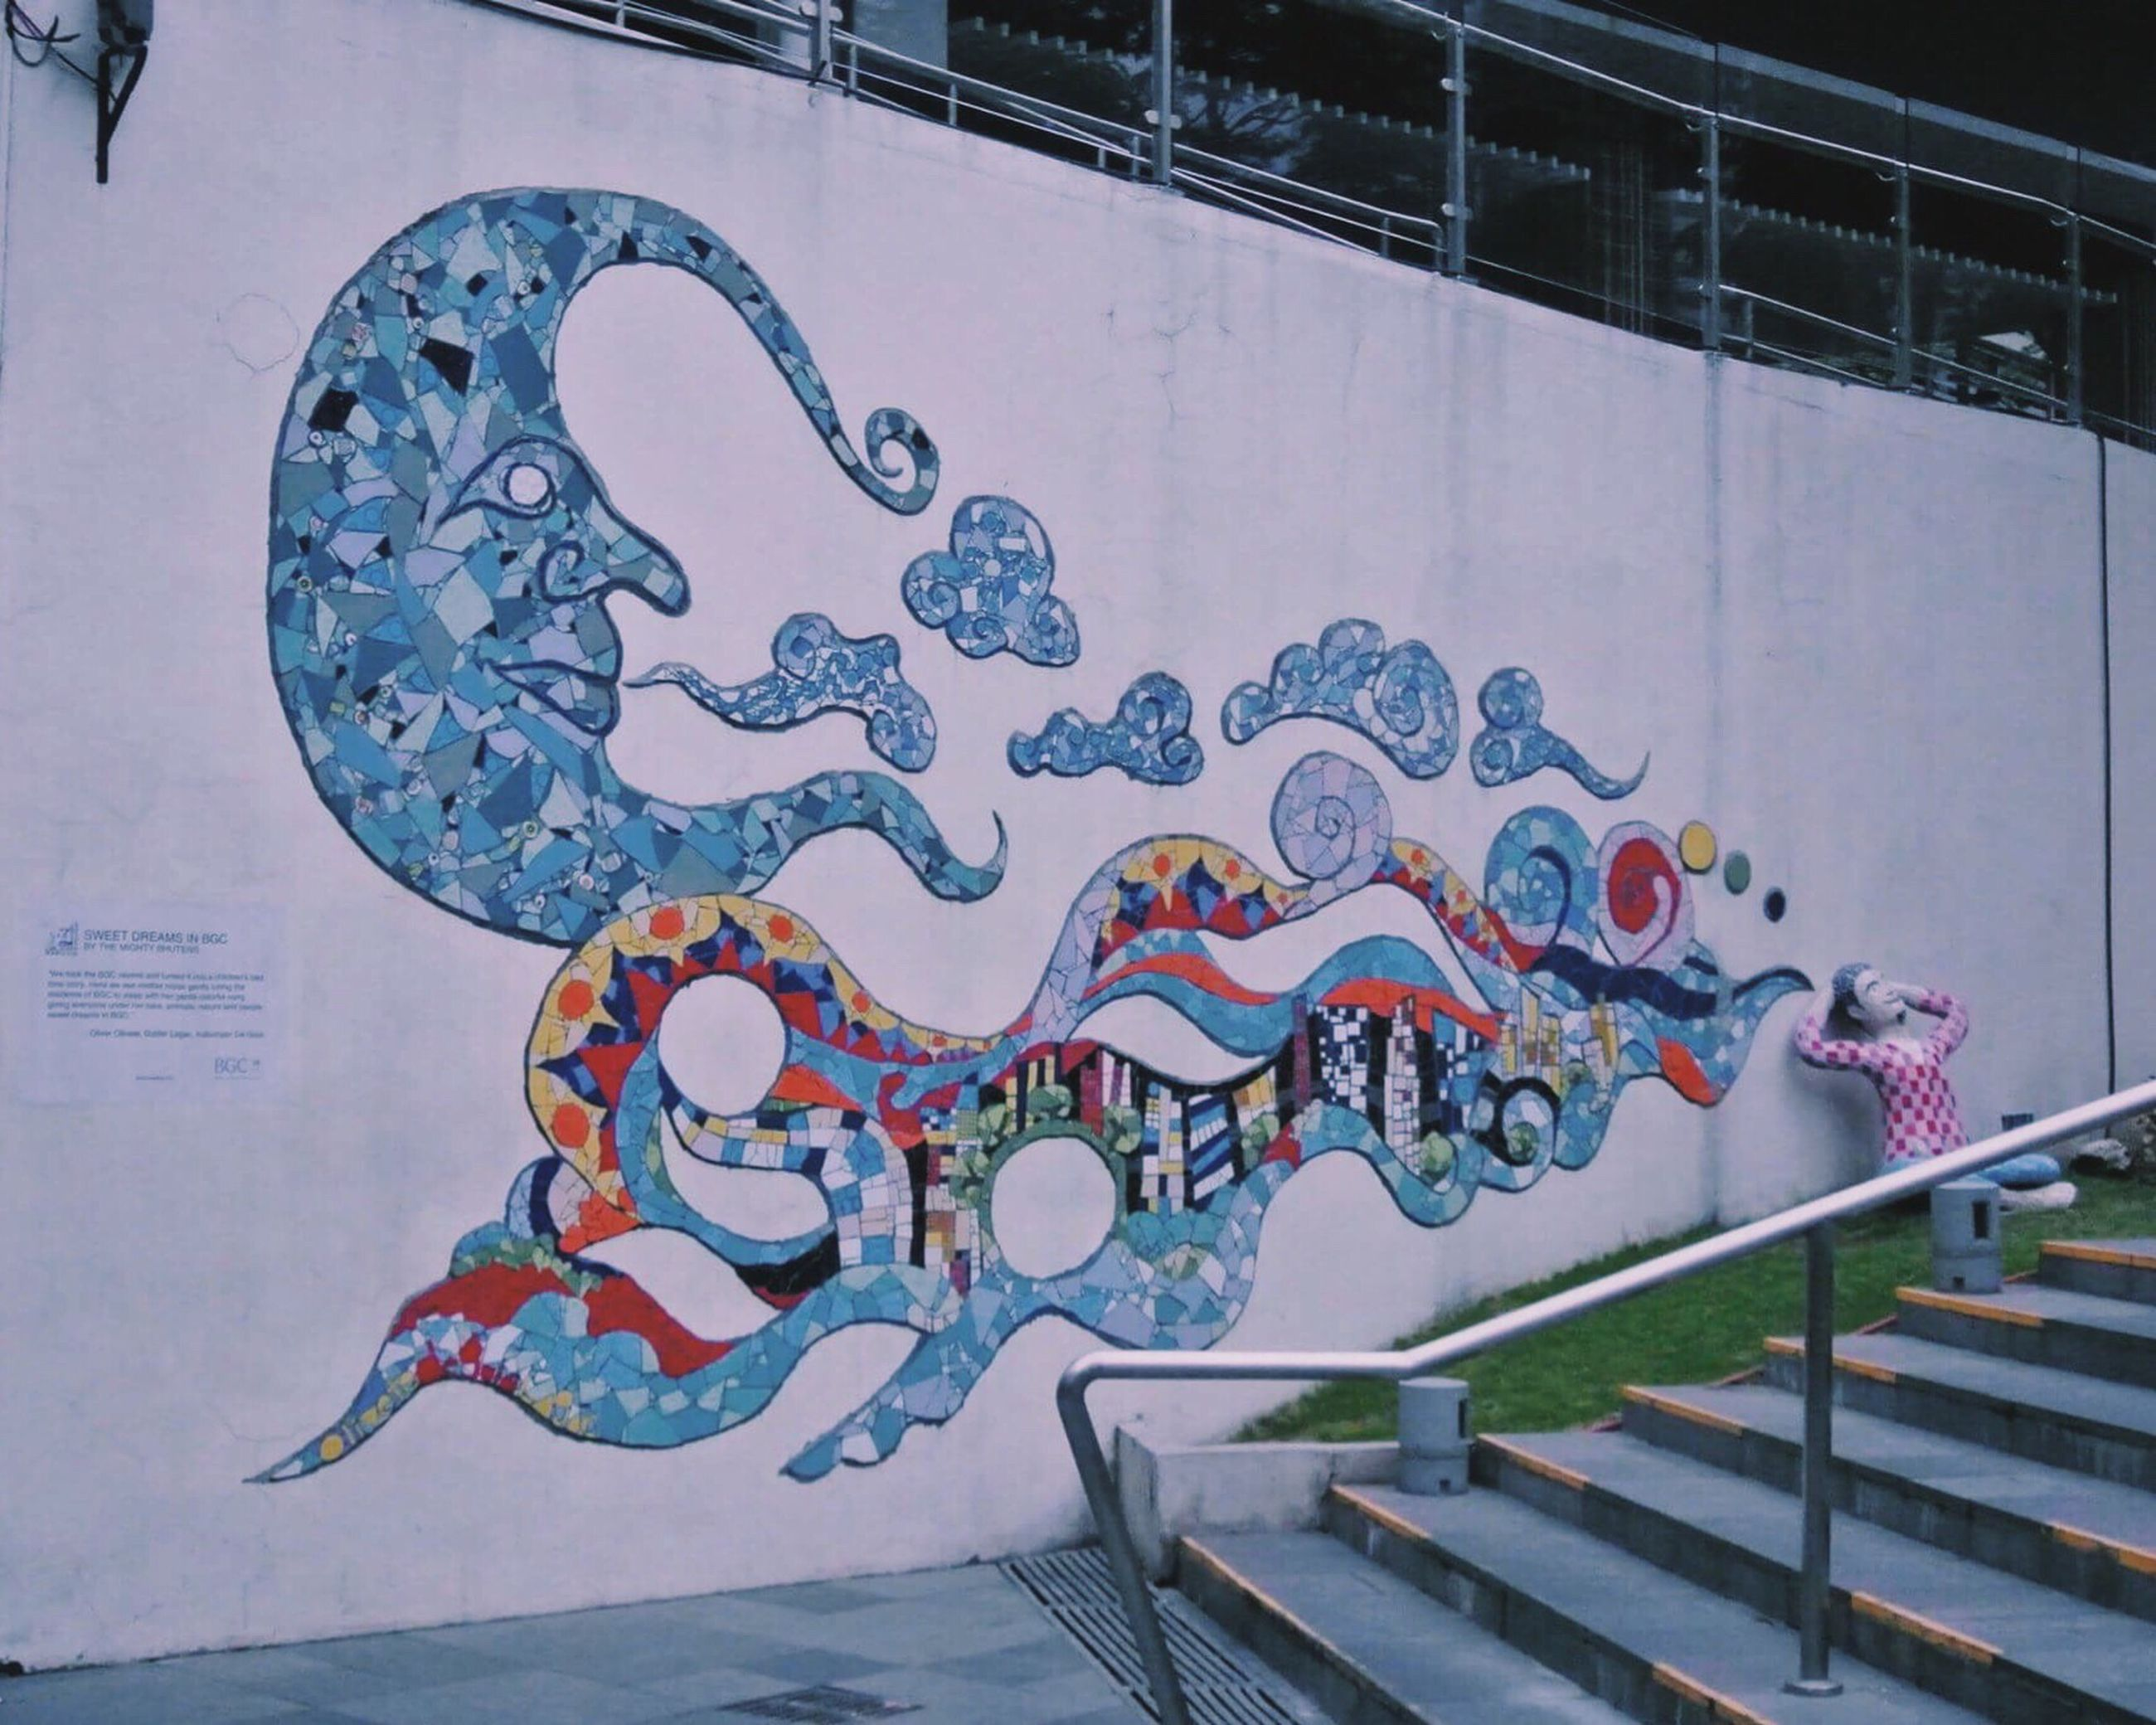 art, art and craft, creativity, graffiti, built structure, architecture, human representation, animal representation, wall - building feature, text, street art, building exterior, craft, sculpture, railing, multi colored, day, no people